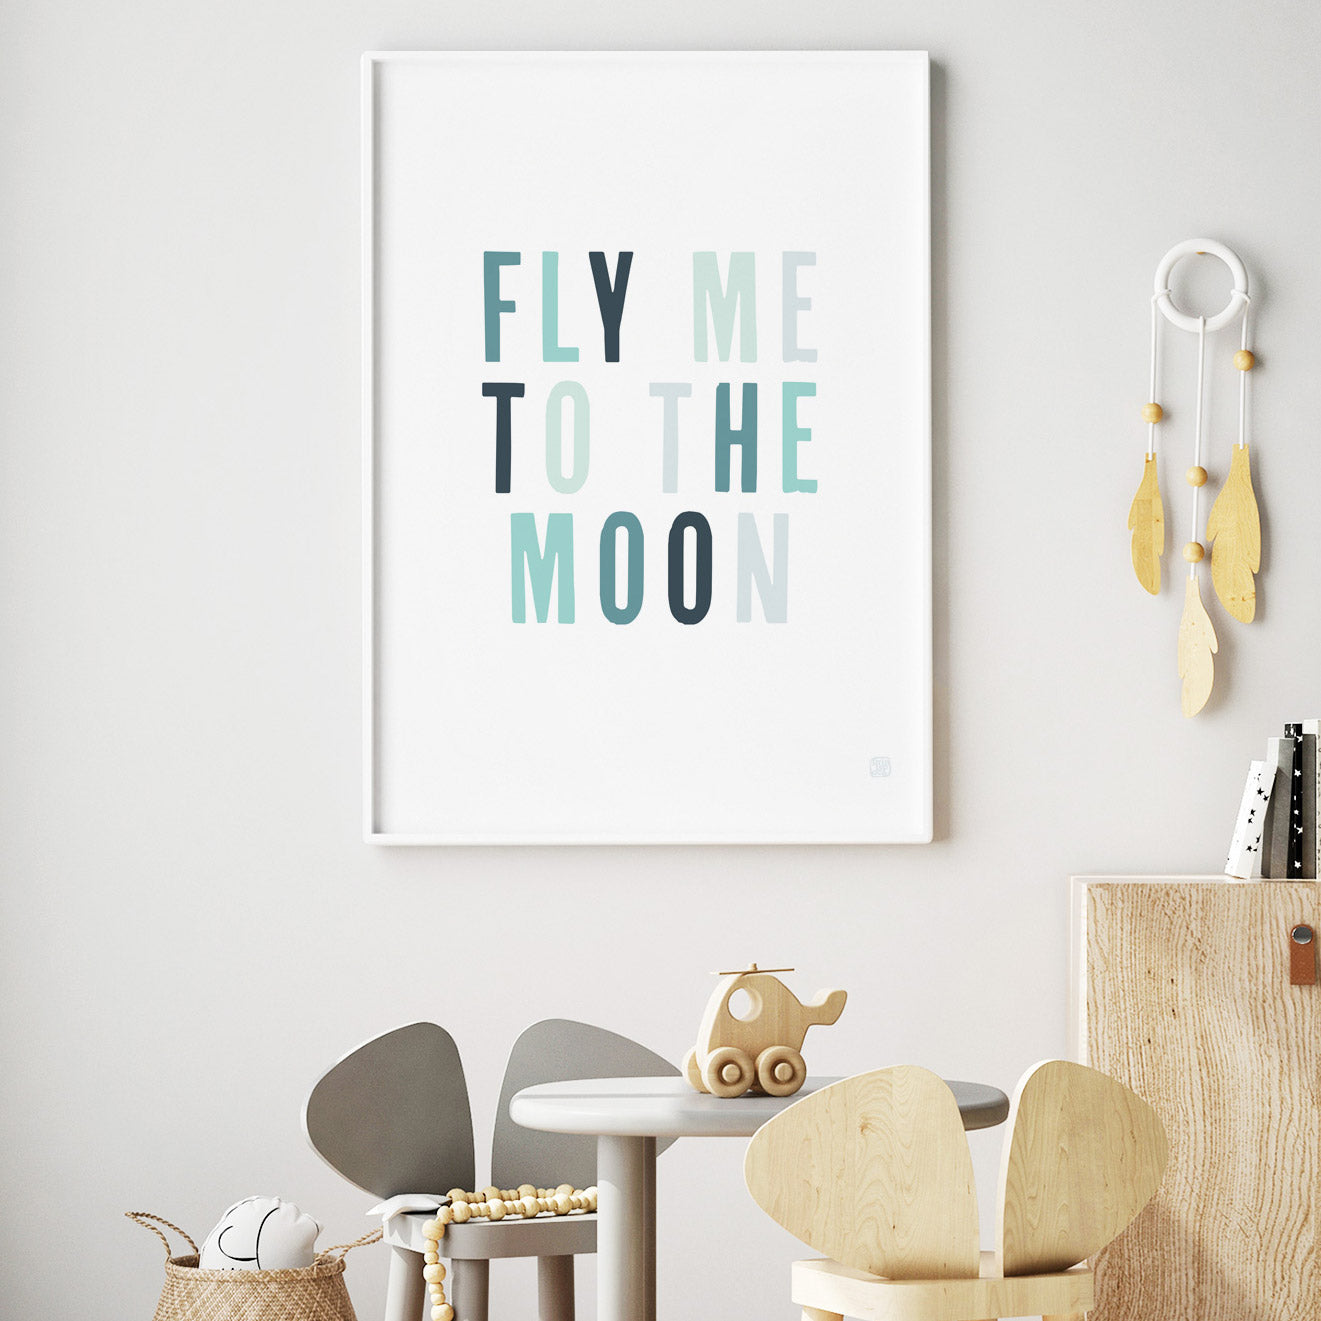 New: Add some words to your walls